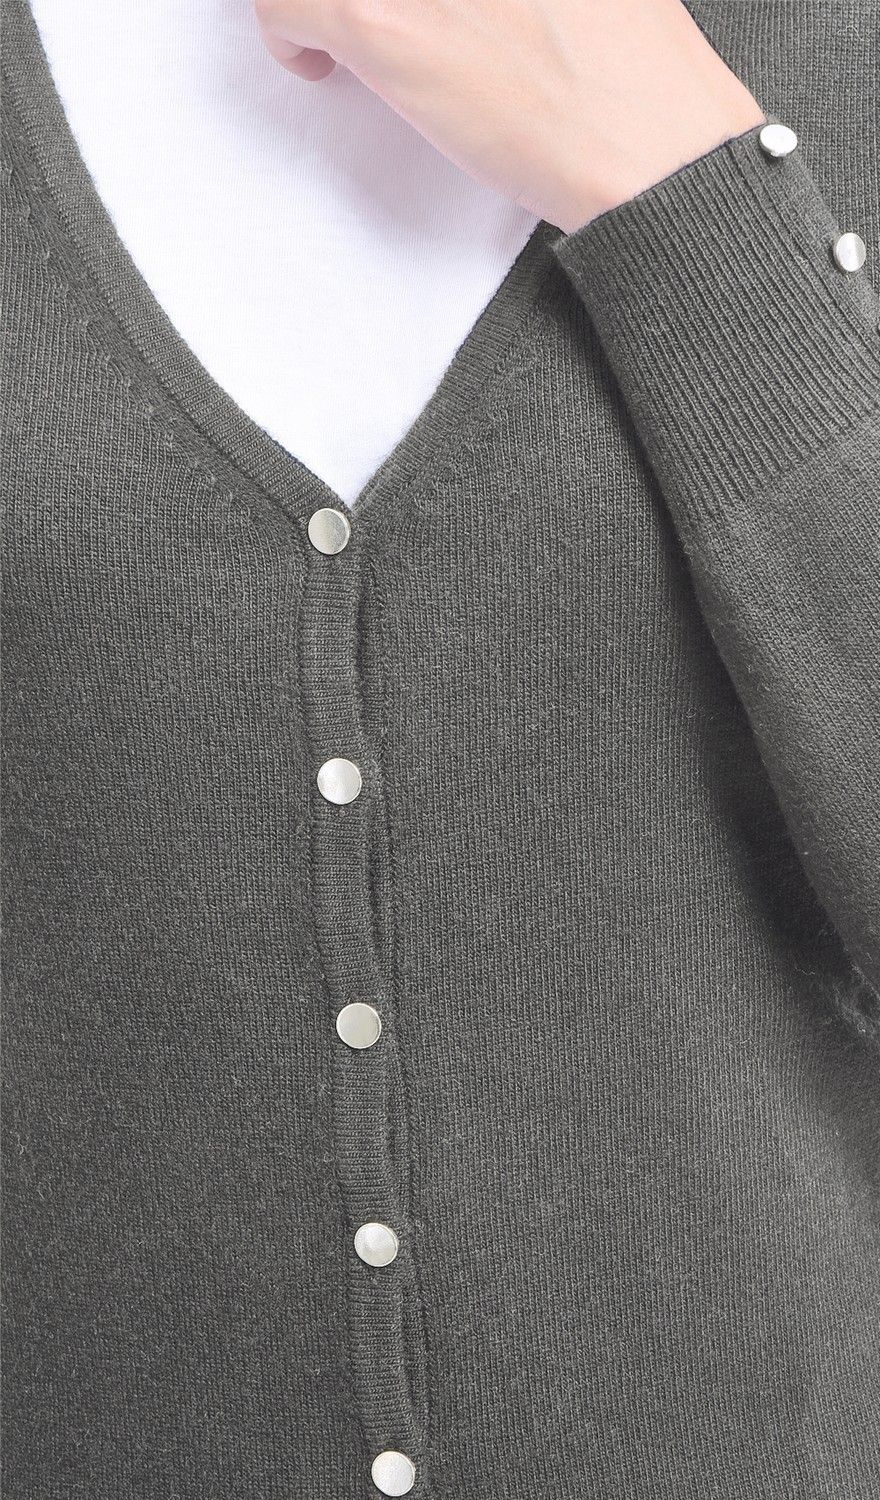 C&JO V-neck Cardigan with Silver Buttons in Grey